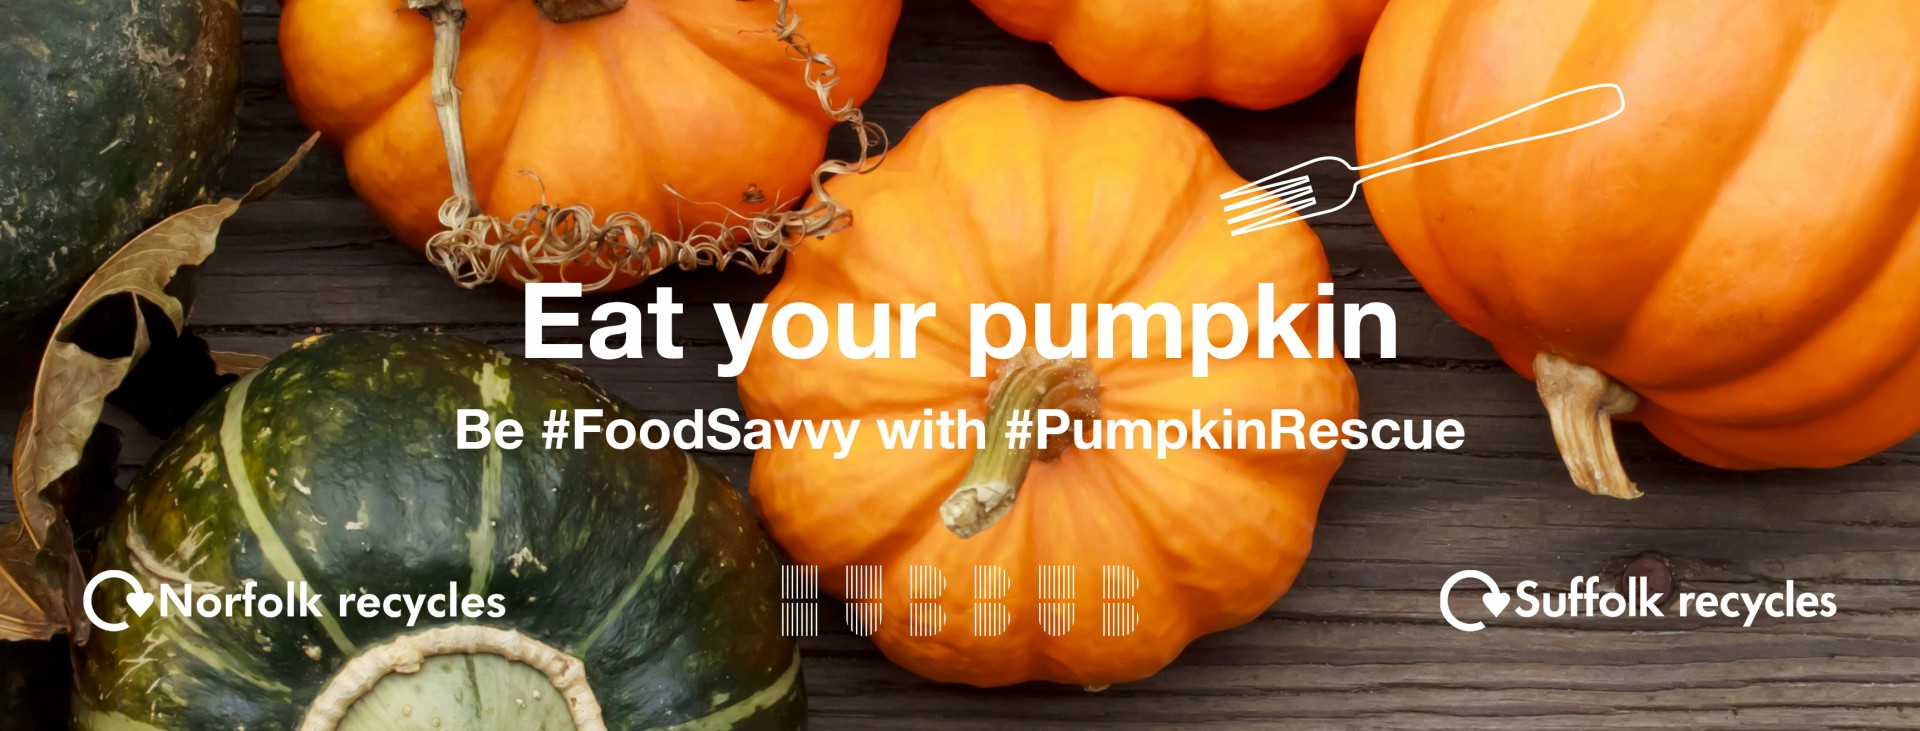 food savvy eat your pumpkin picture